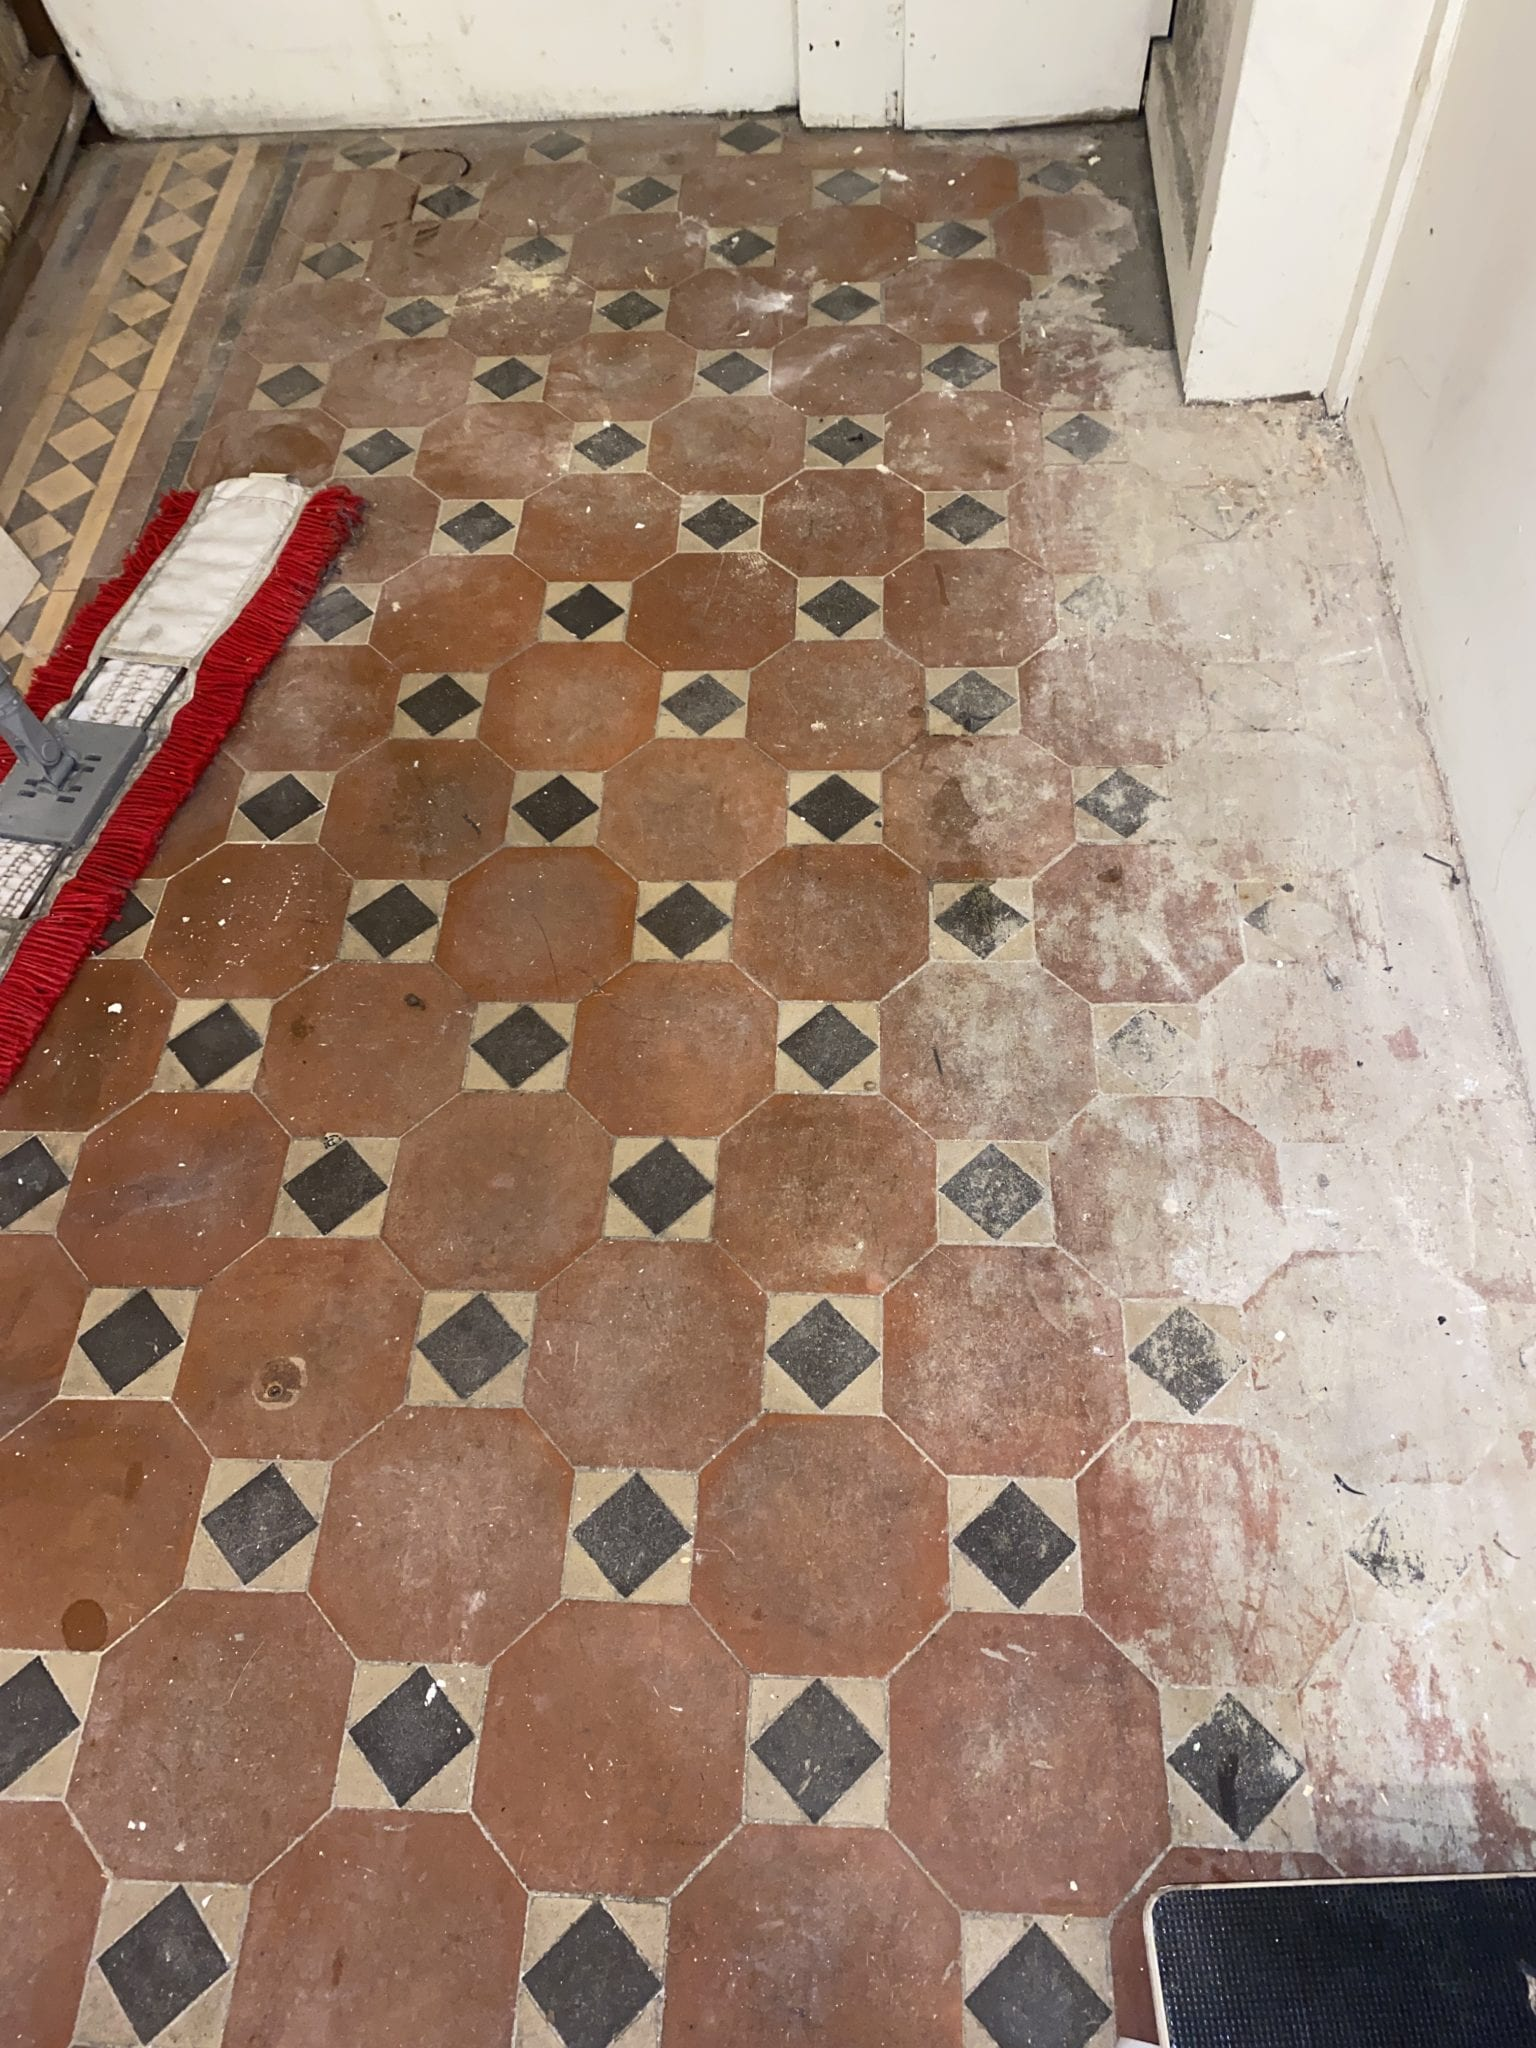 2a Removing cement and builders debris from Victorian Tile Cleaning service near me